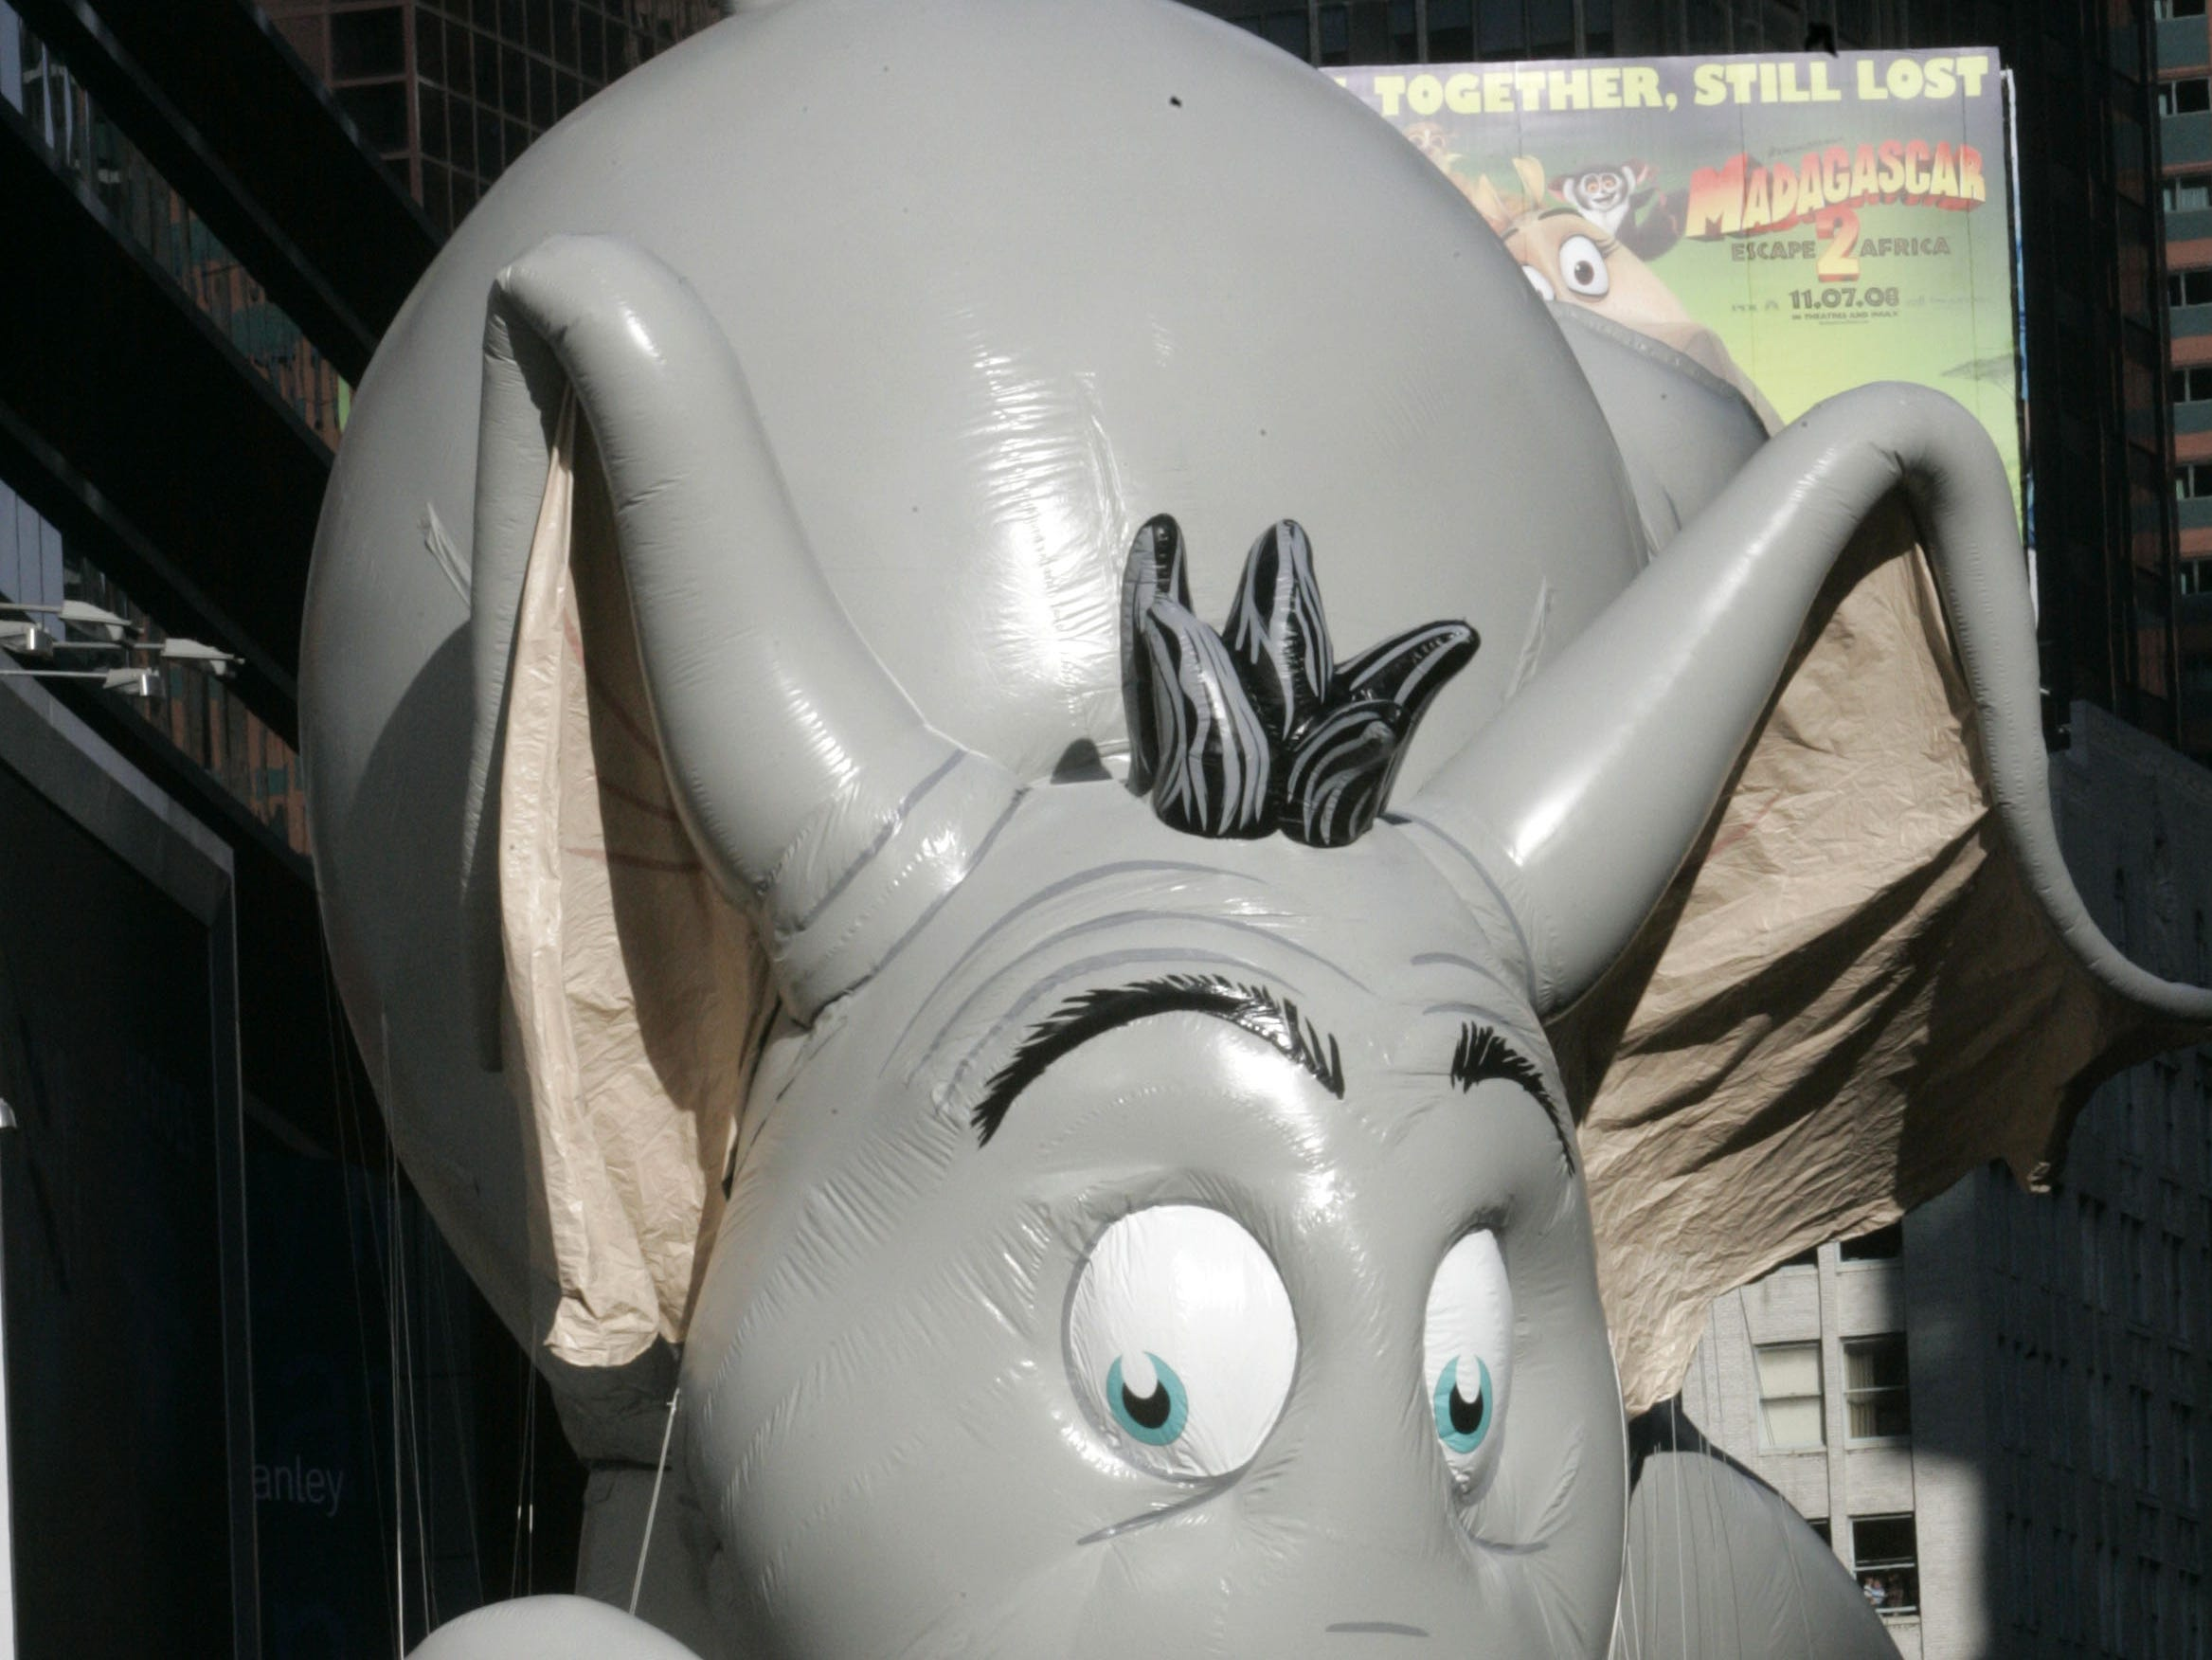 The Horton float moves through Times Square during the Macy's Thanksgiving Day Parade Thursday, Nov. 27, 2008, in New York. Horton, the compassionate elephant of Dr. Seuss books, is new to the parade this year. (AP Photo/Frank Franklin II)